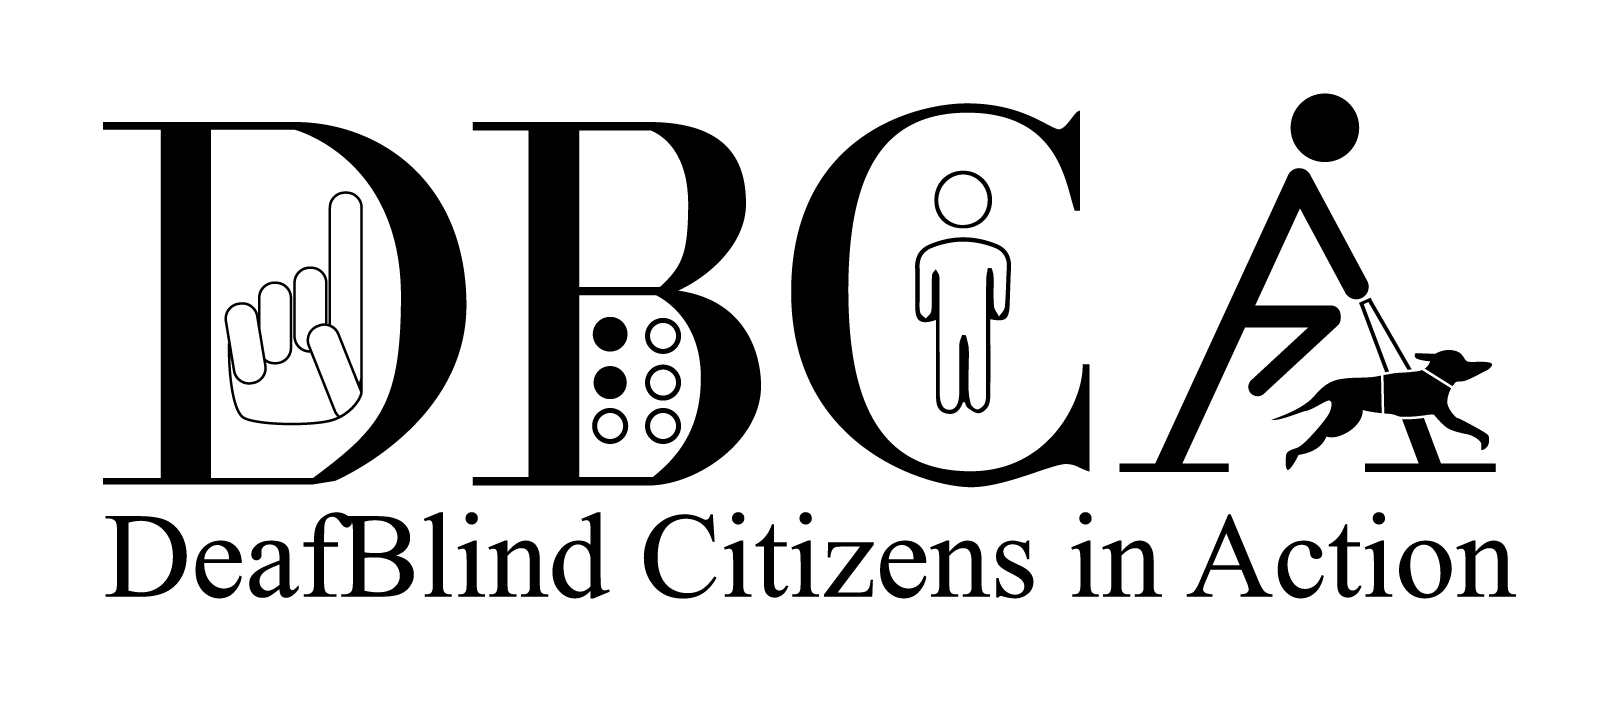 Deafblind Citizens in Action logo